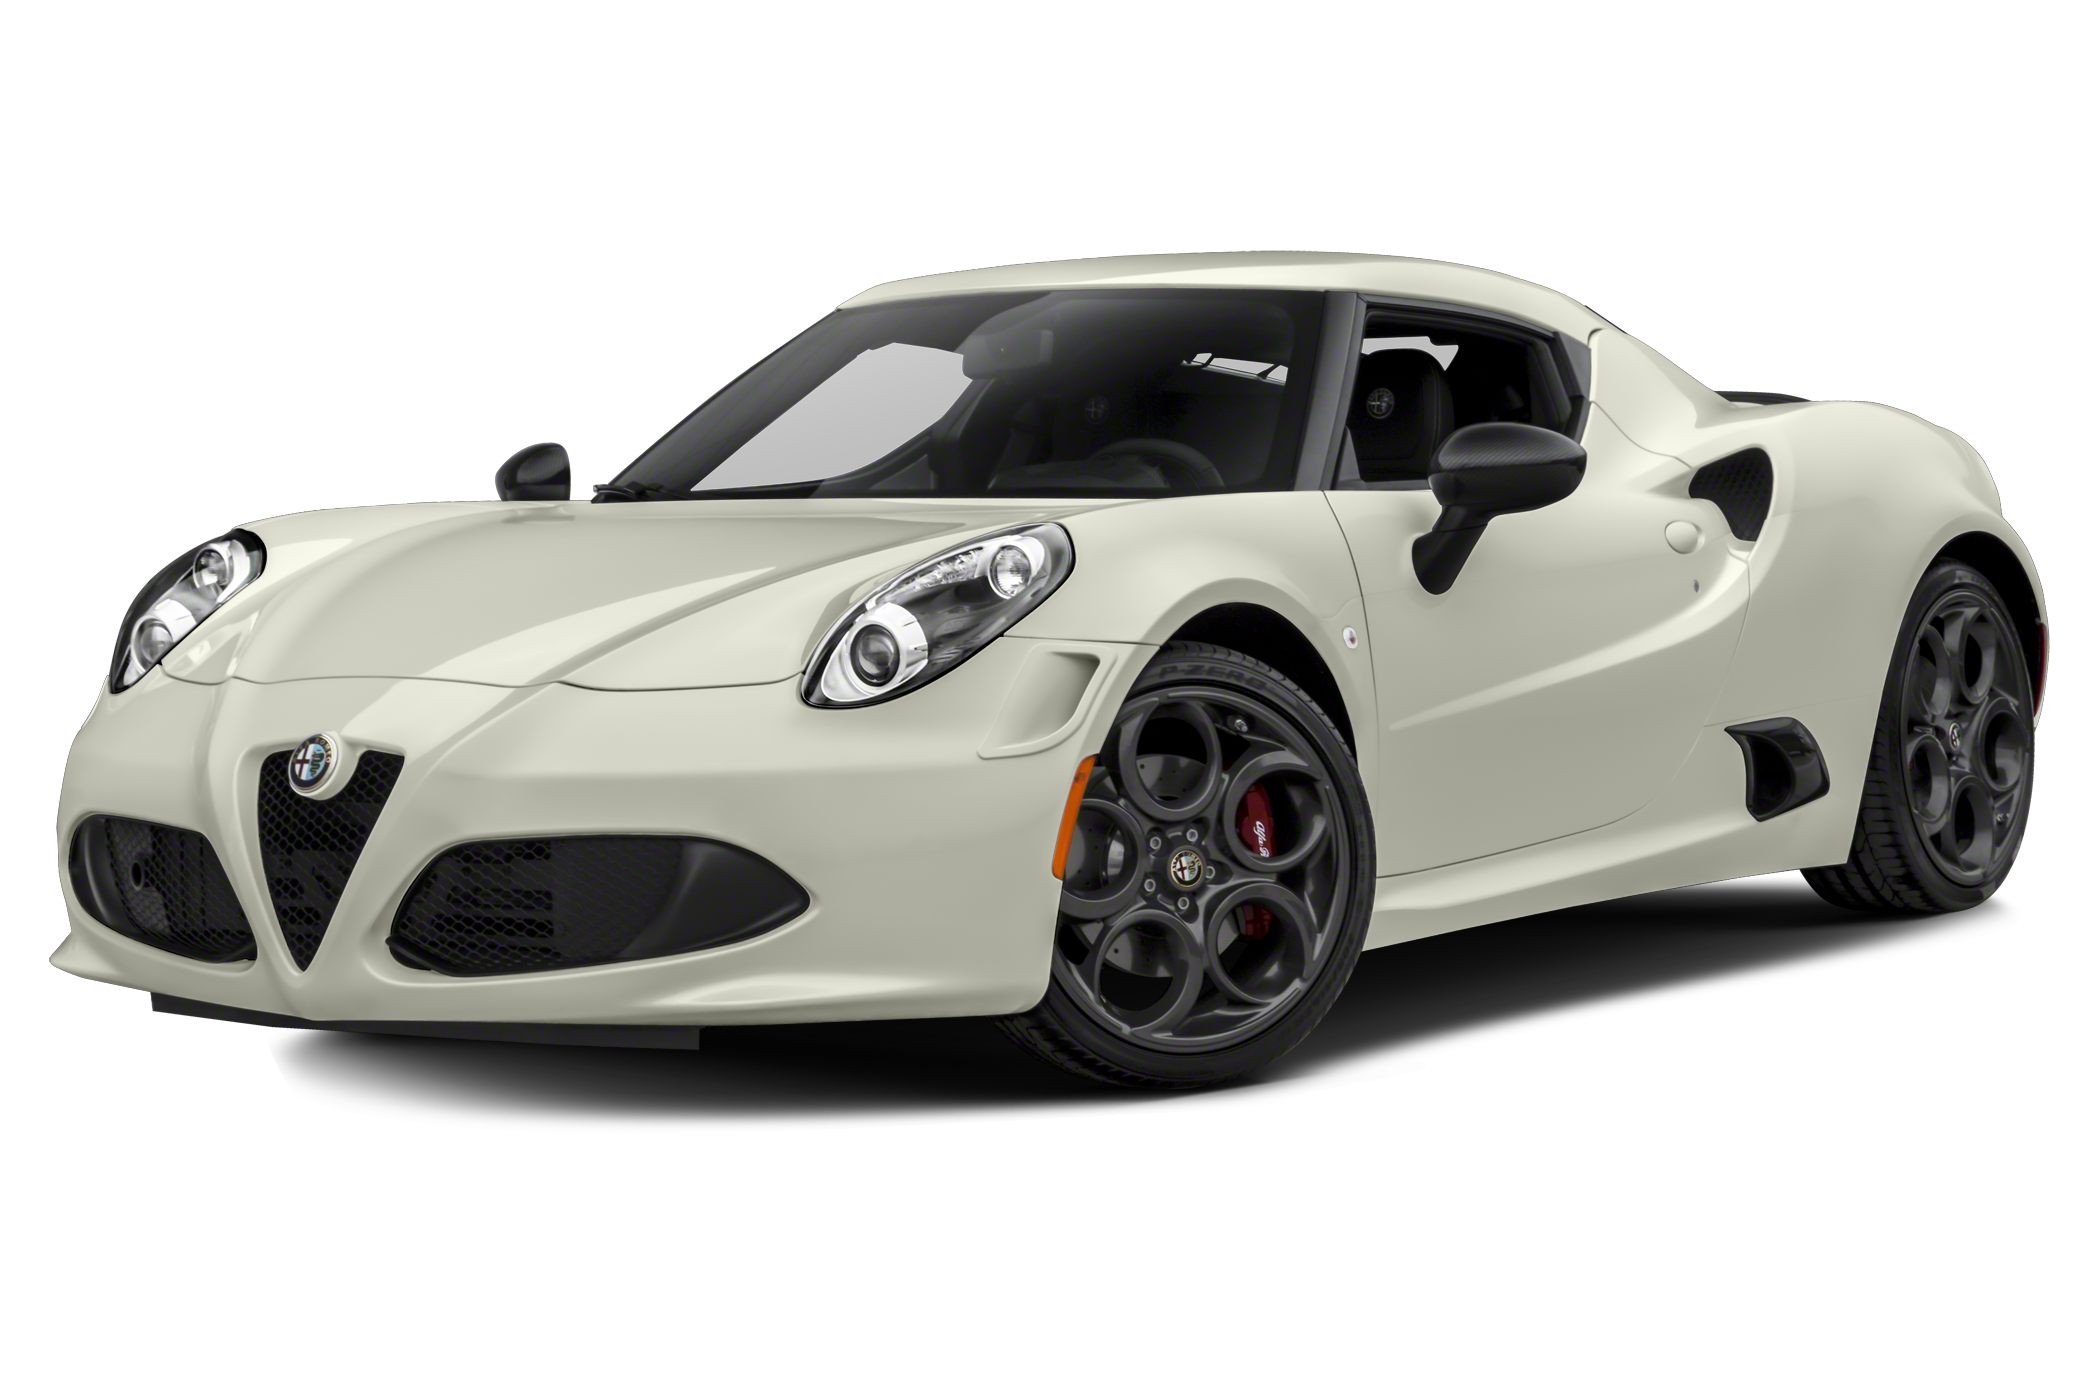 Alfa Romeo 8c Price Awesome 2017 Alfa Romeo 4c Base 2dr Coupe Pricing and Options